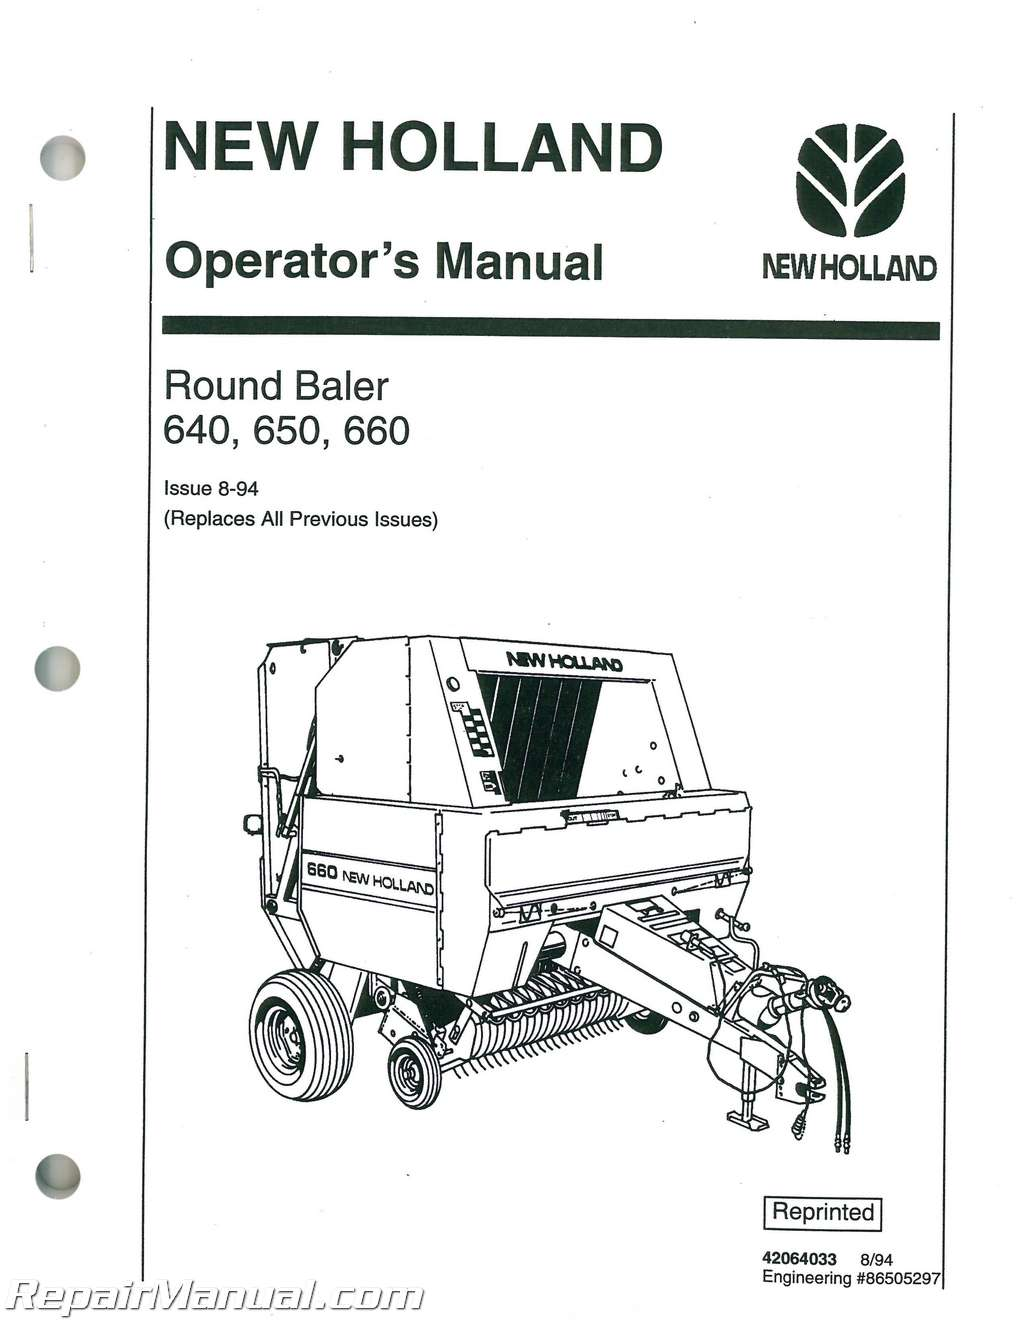 New Holland 640 650 660 Large Round Baler Operators Manual